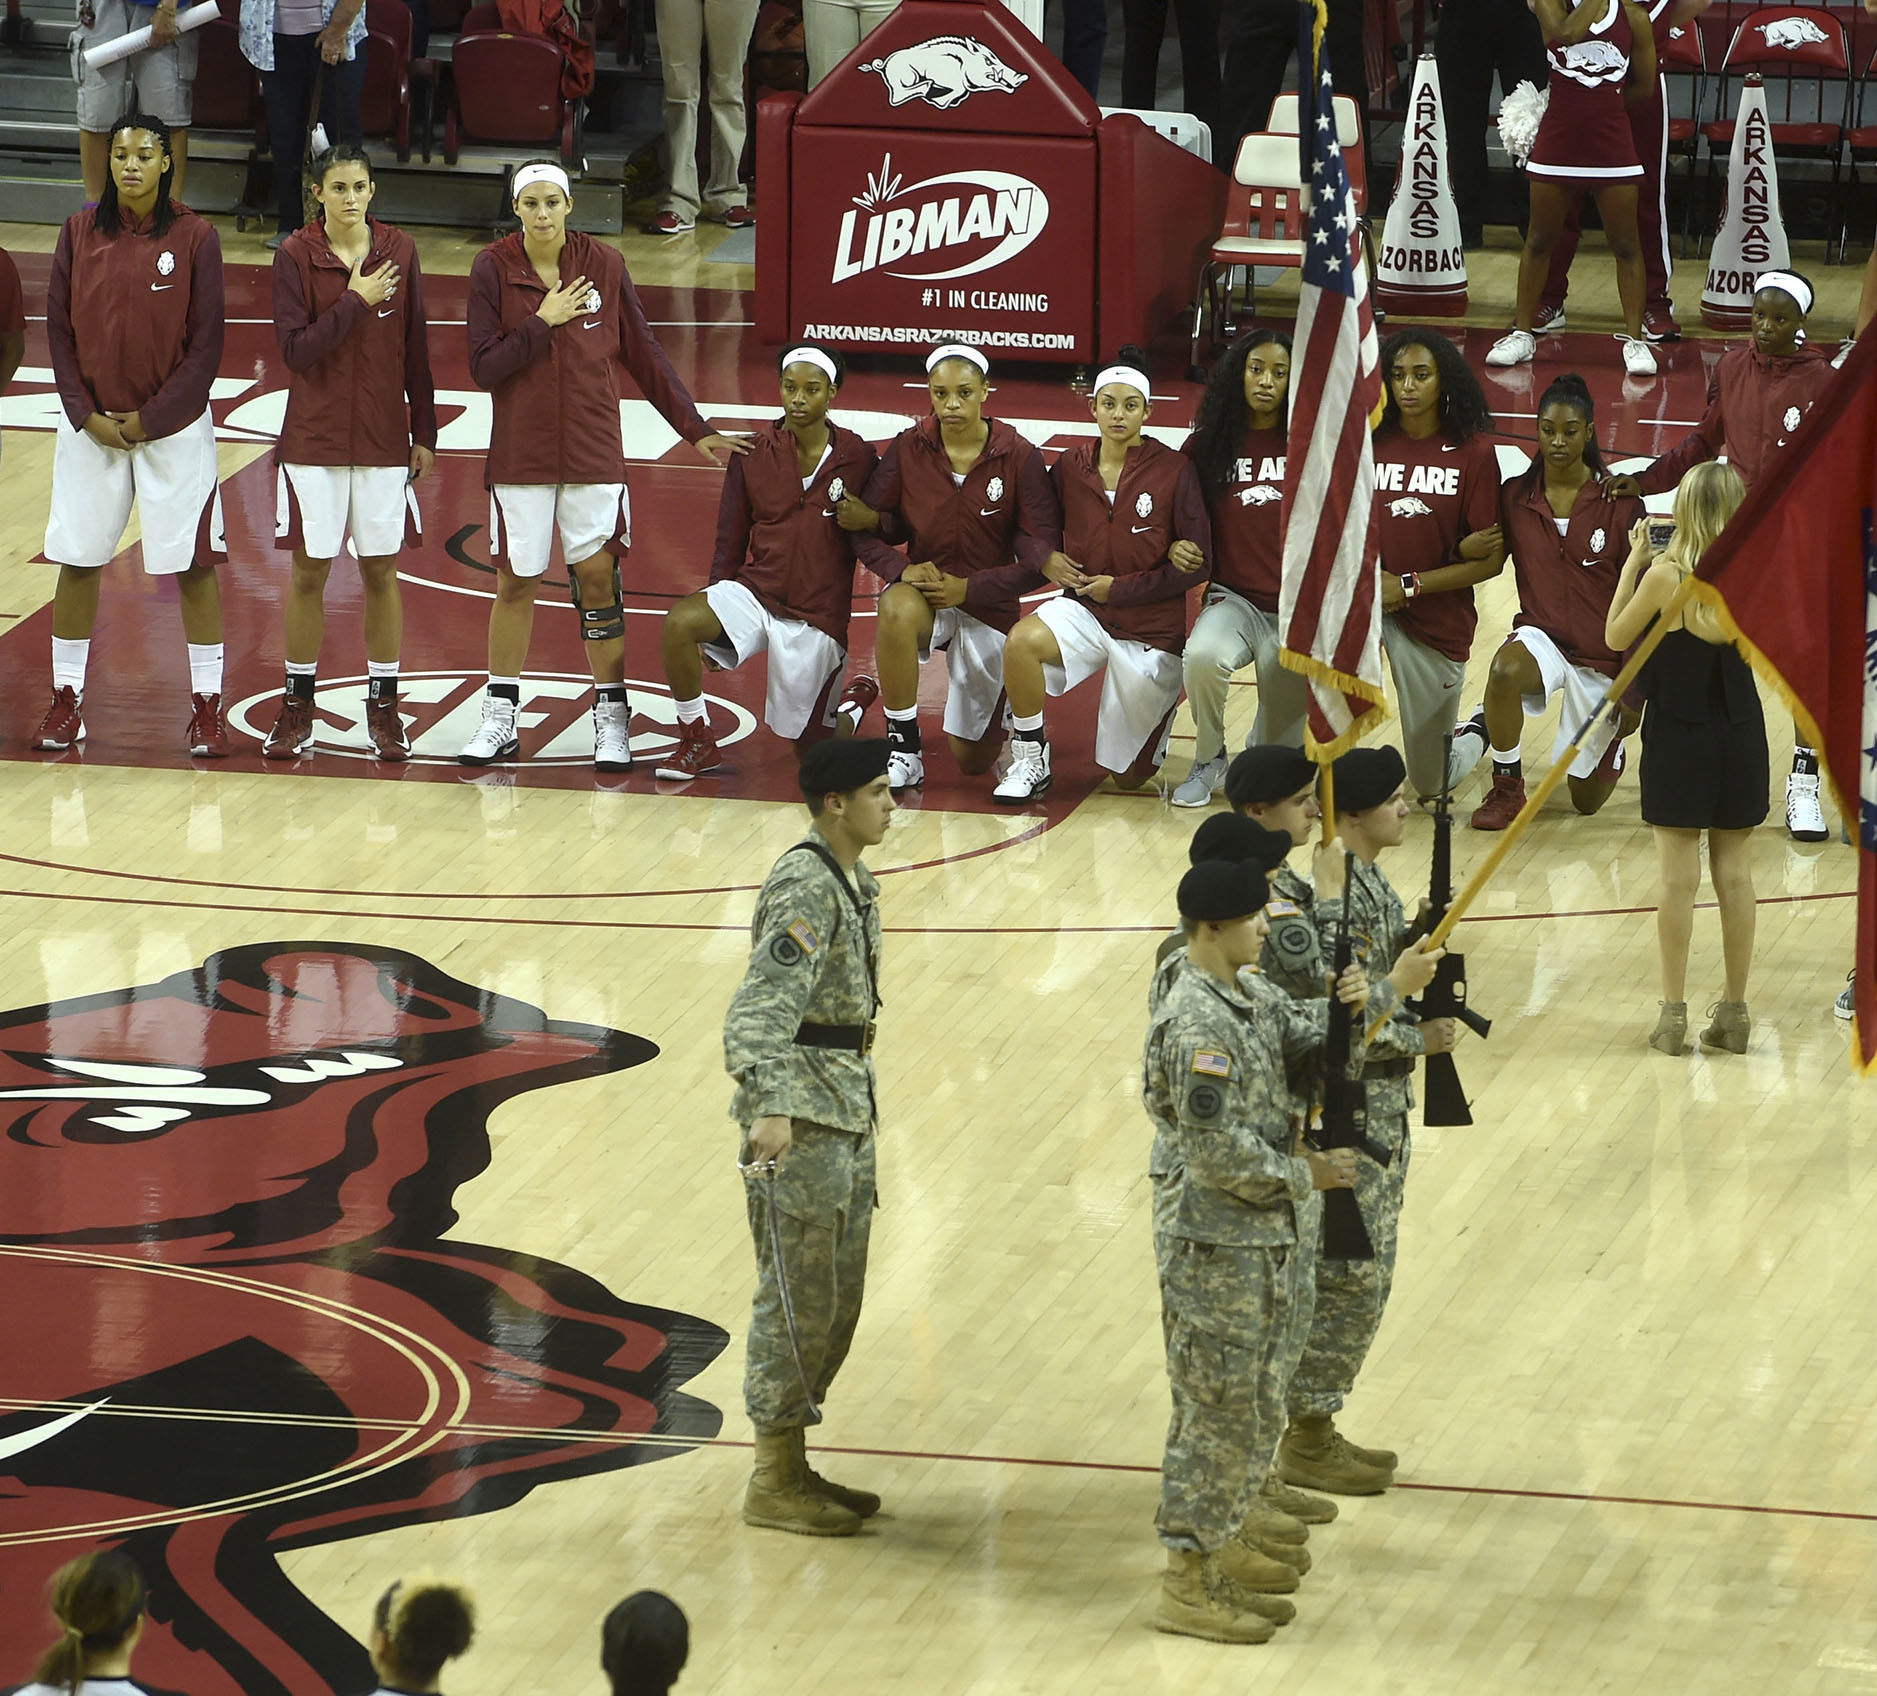 In this Thursday, Nov. 3, 2016 photo, six members of the Arkansas women's basketball team kneel during the national anthem before their exhibition game against Oklahoma Baptist in Fayetteville, Ark. Arkansas athletic director Jeff Long said the university is backing the six players.